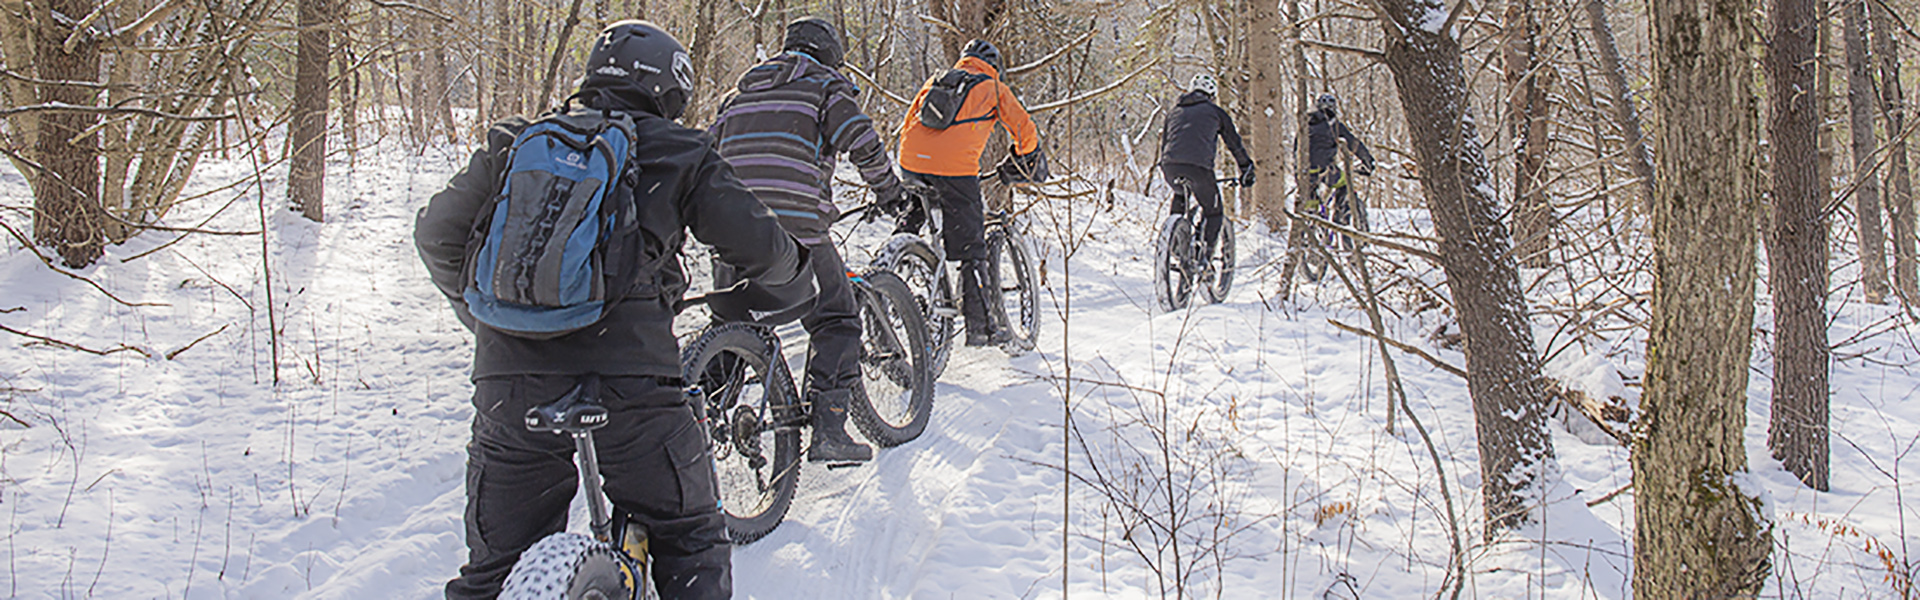 Fat Biking Private Guided Adventure